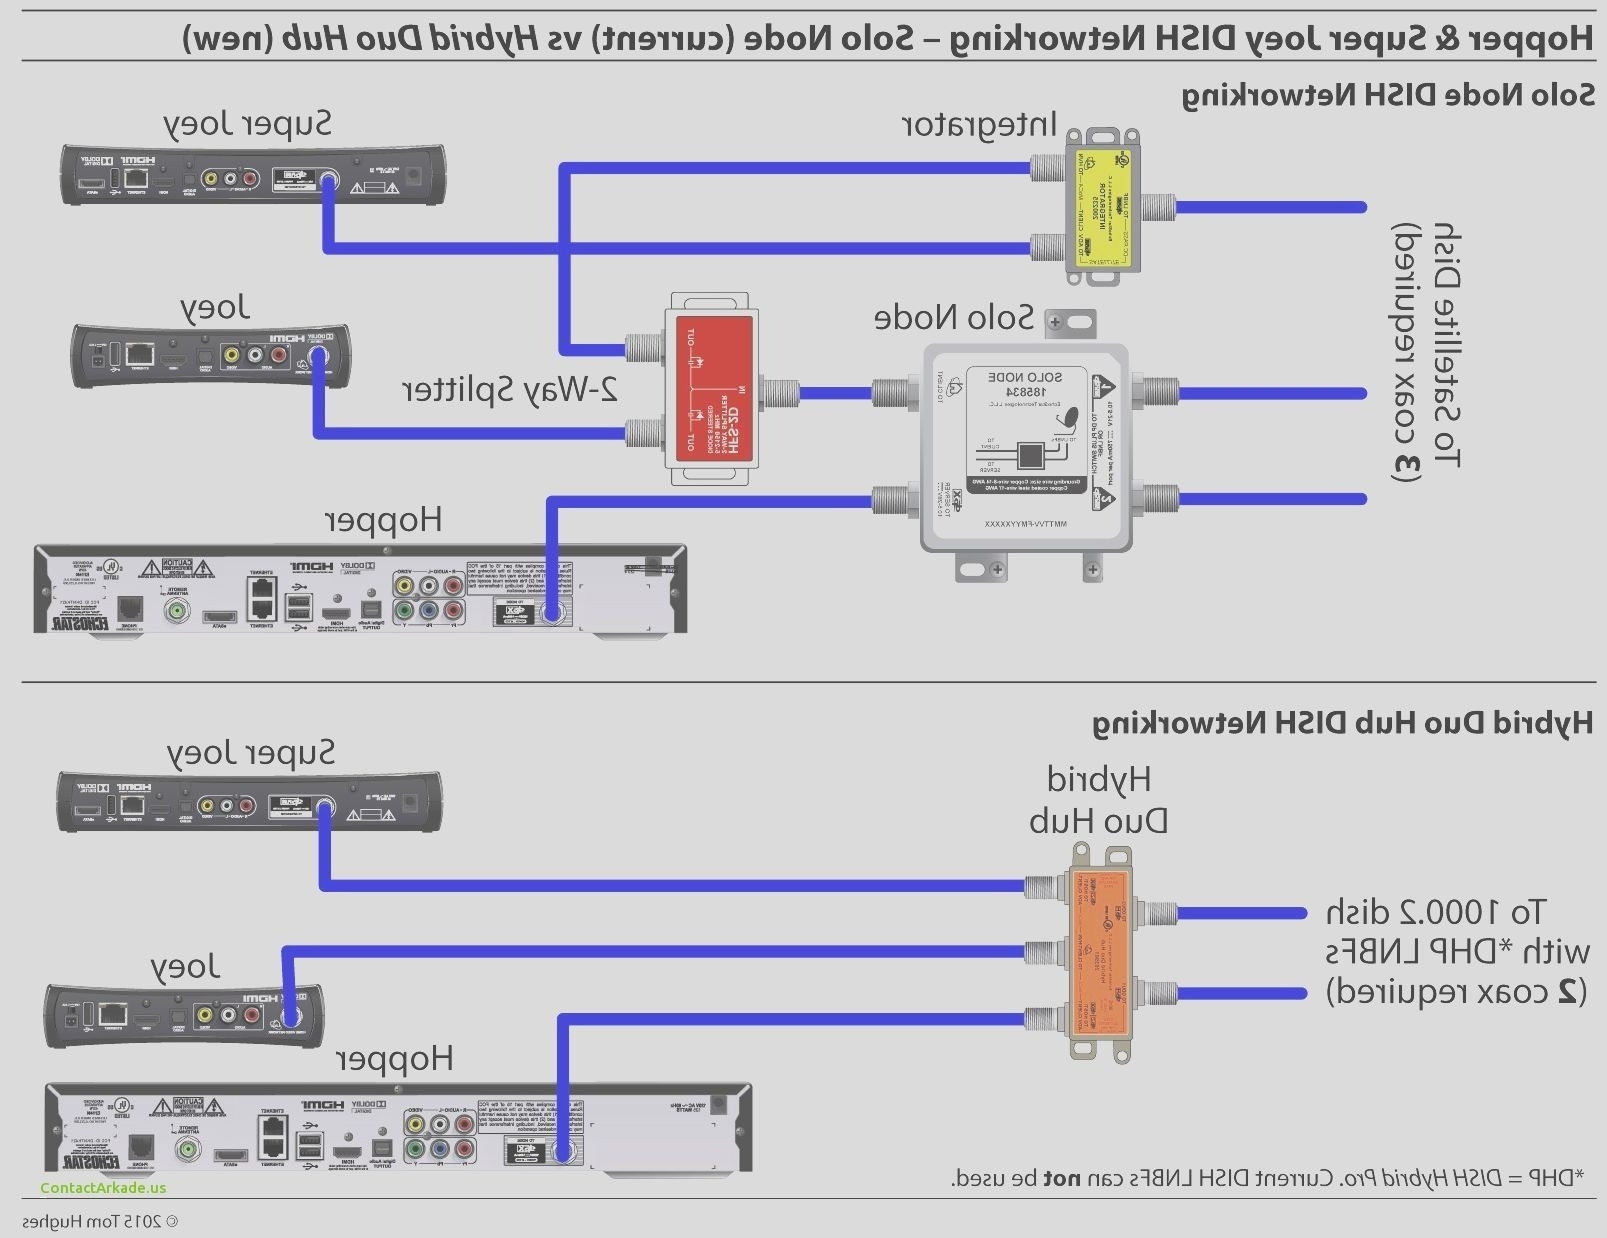 hight resolution of cat5 cctv wiring diagram cat5e crossover cable wiring diagram download wiring diagram for a cat5